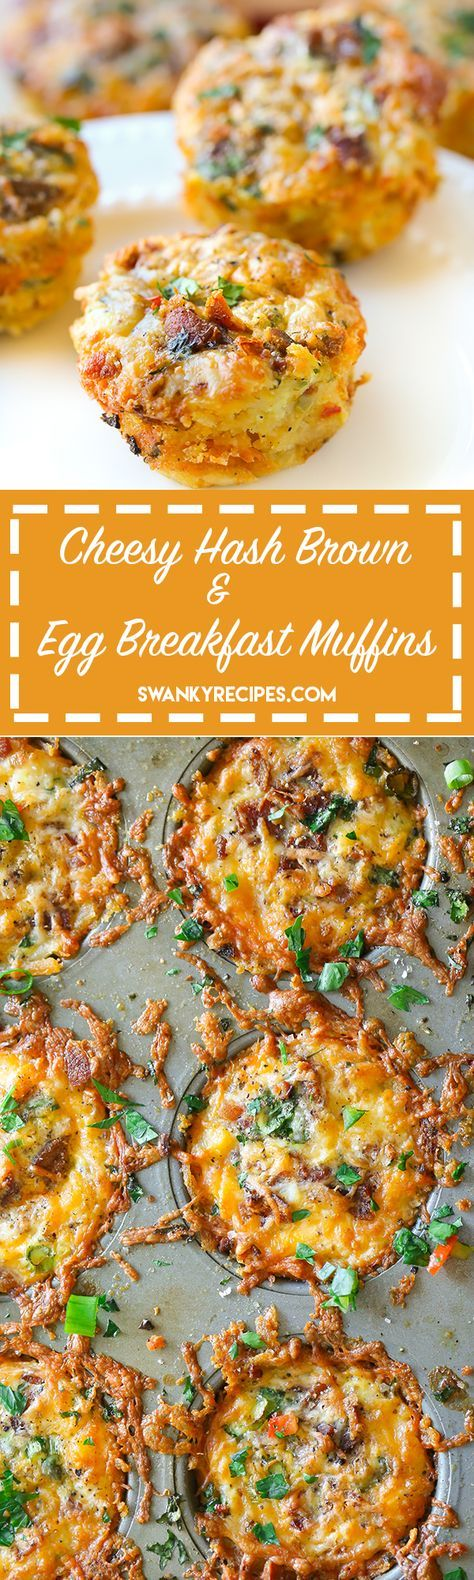 Cheesy Hash Brown and Egg Breakfast Muffins - Cheesy hash brown, bacon and egg breakfast muffins. These muffin tin breakfast bites are stuffed with cheesy goodness: crispy bacon, hash browns, eggs, chopped vegetables, and herbs. #BordenCheeseLove #ad